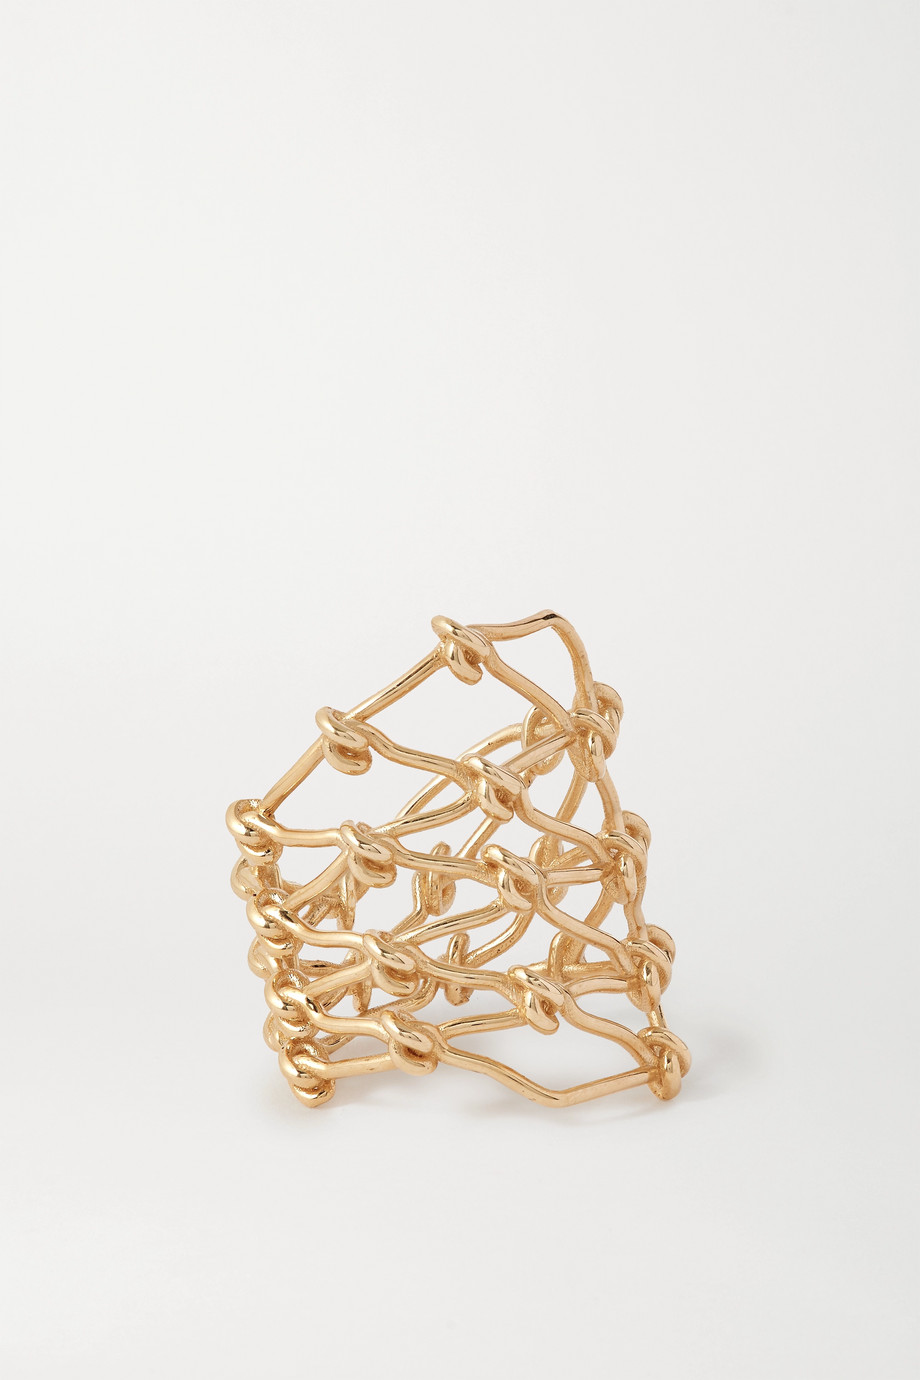 SARAH & SEBASTIAN Large Net 10-karat gold ring